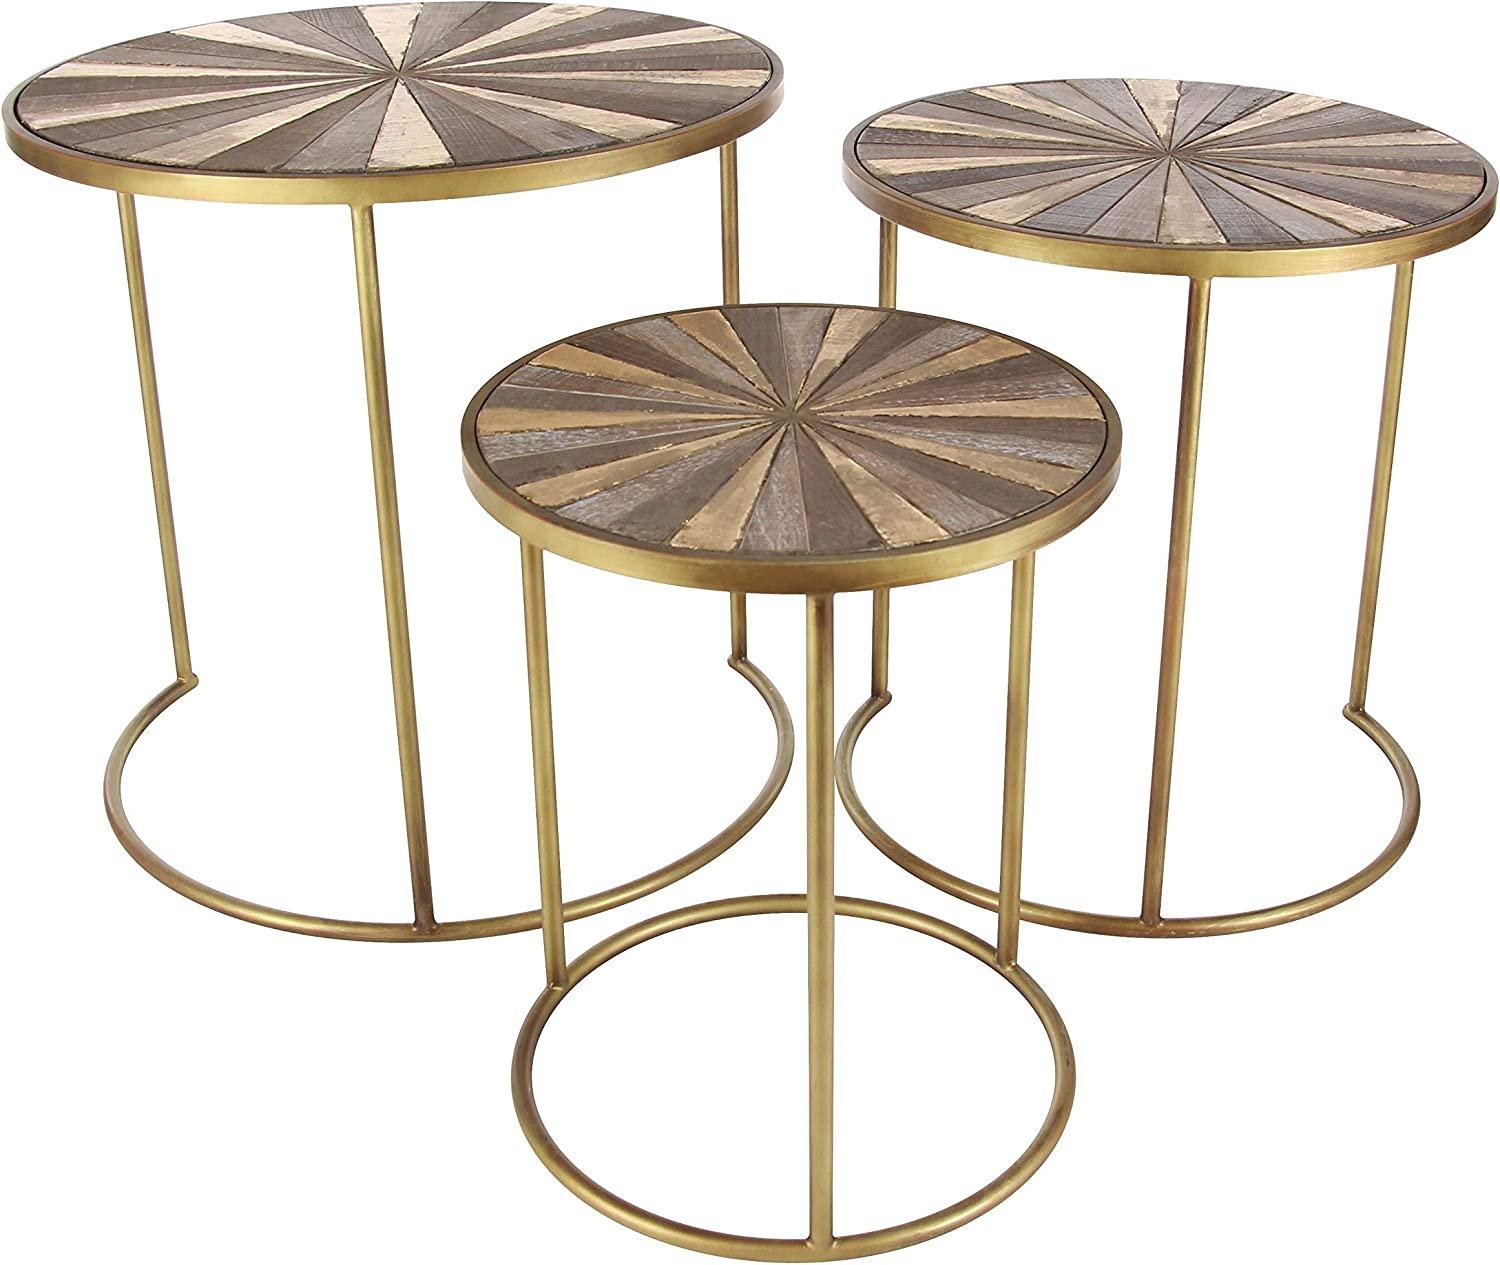 """Deco 79 19""""x 21"""" x 23"""" Metal And Wood Accent Table (Set Of 3), 19"""" x 21"""" x 23"""", Light Dark Brown/Gold: Furniture & Decor"""